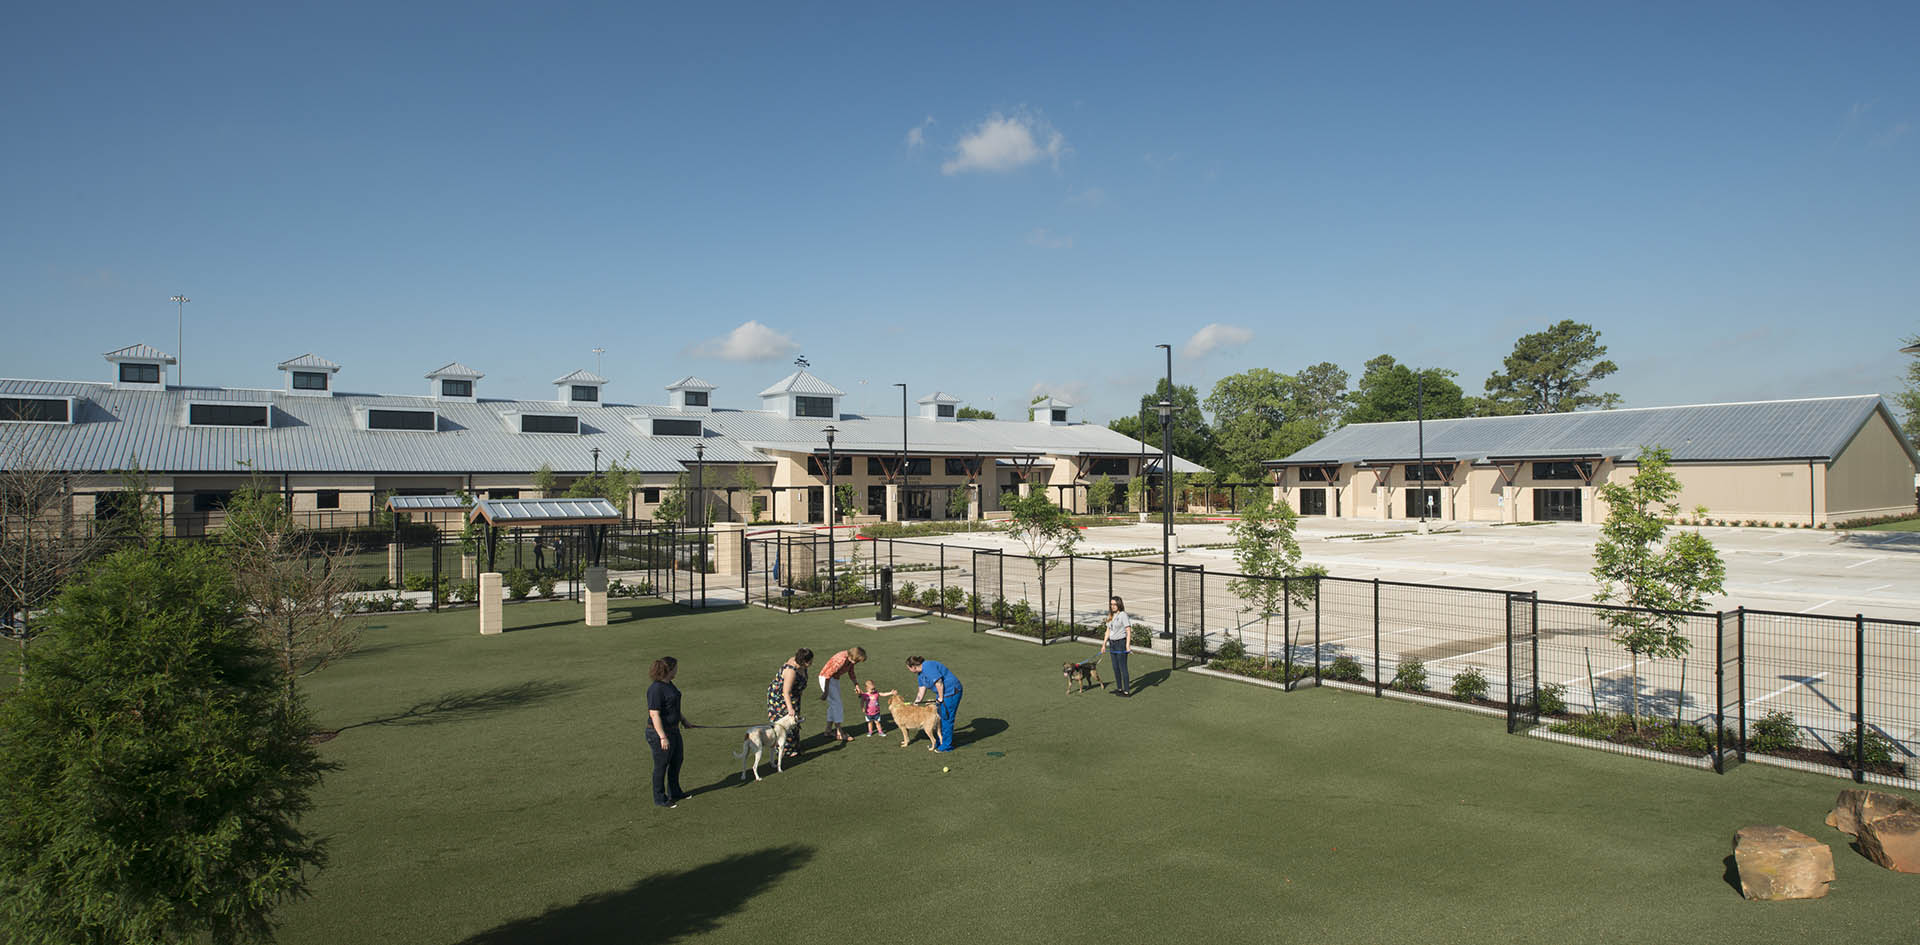 2 HSPCA state of the art animal shelter and wildlife center by Jackson & Ryan Architects